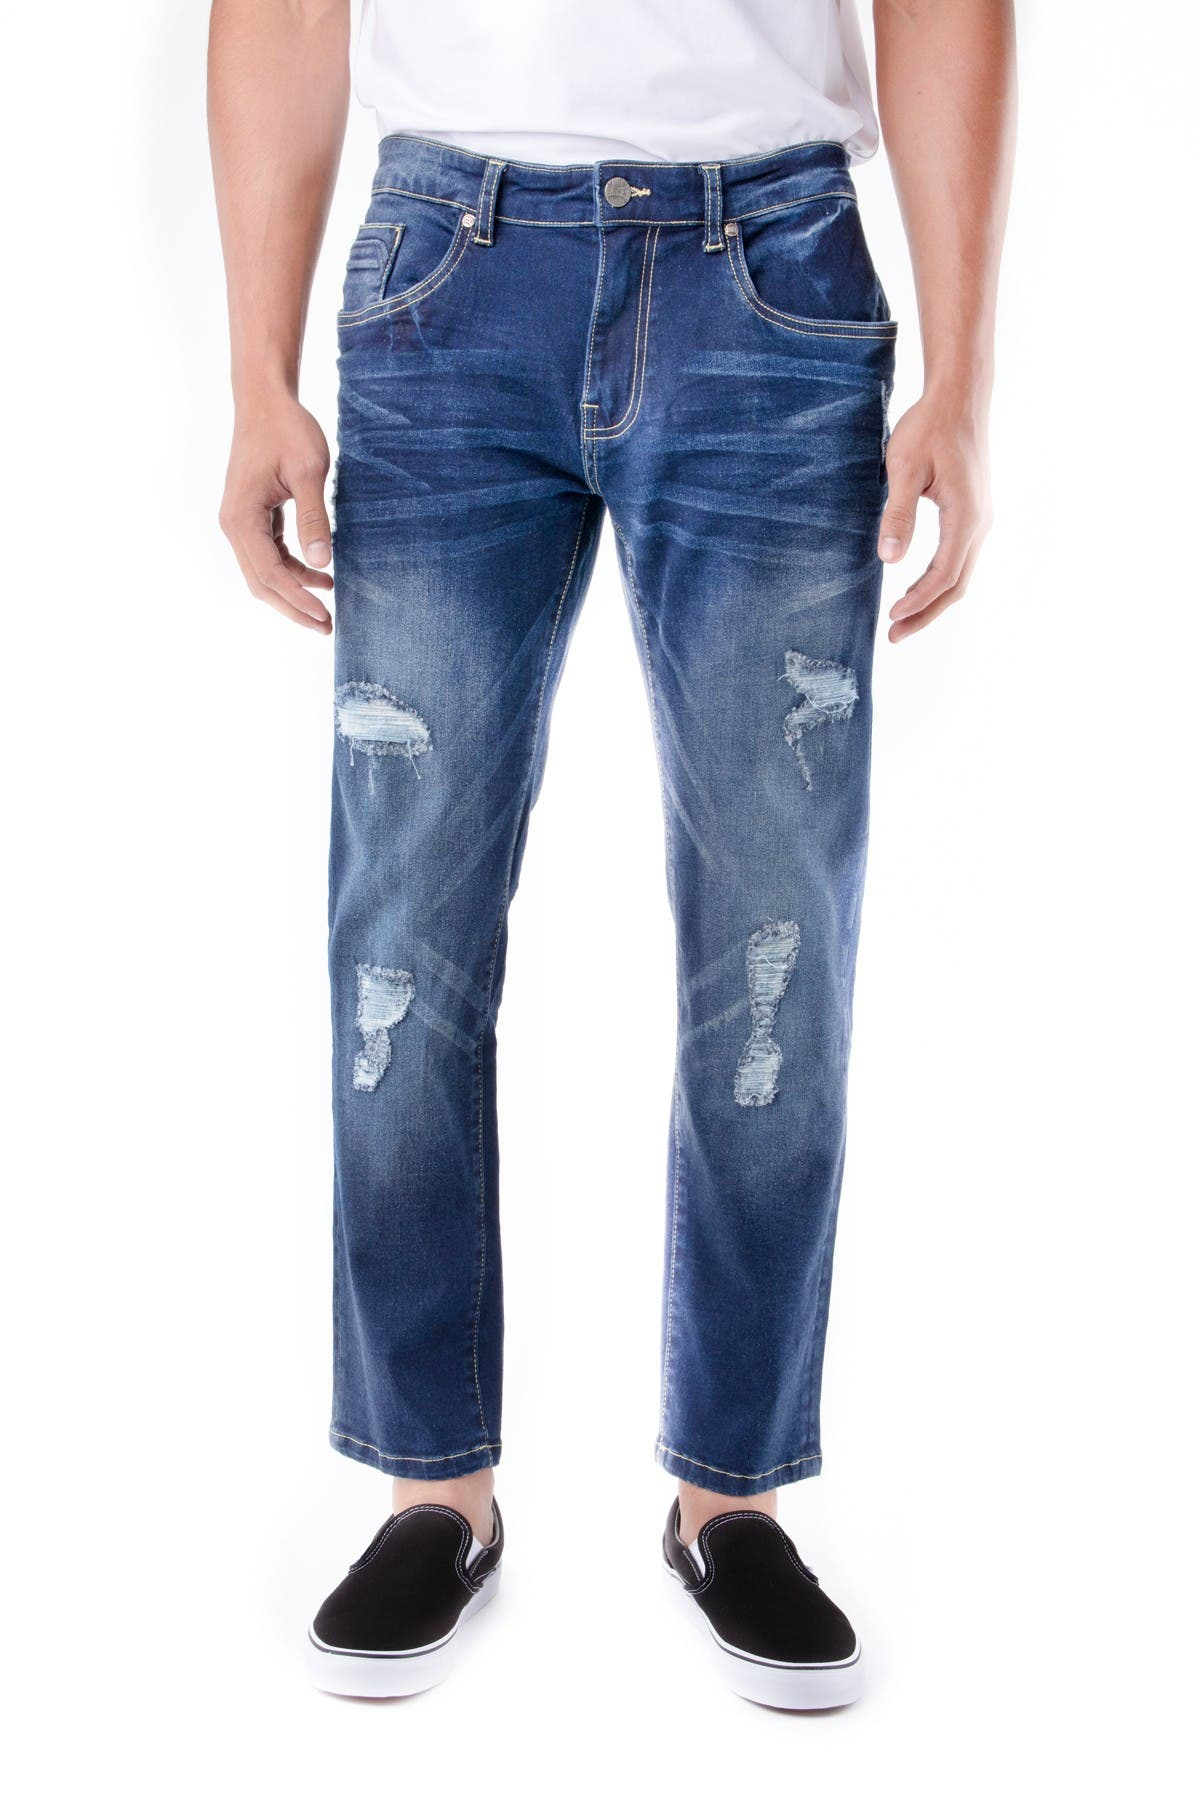 Image of XRAY Skinny-Fit Distressed Stretch Jeans